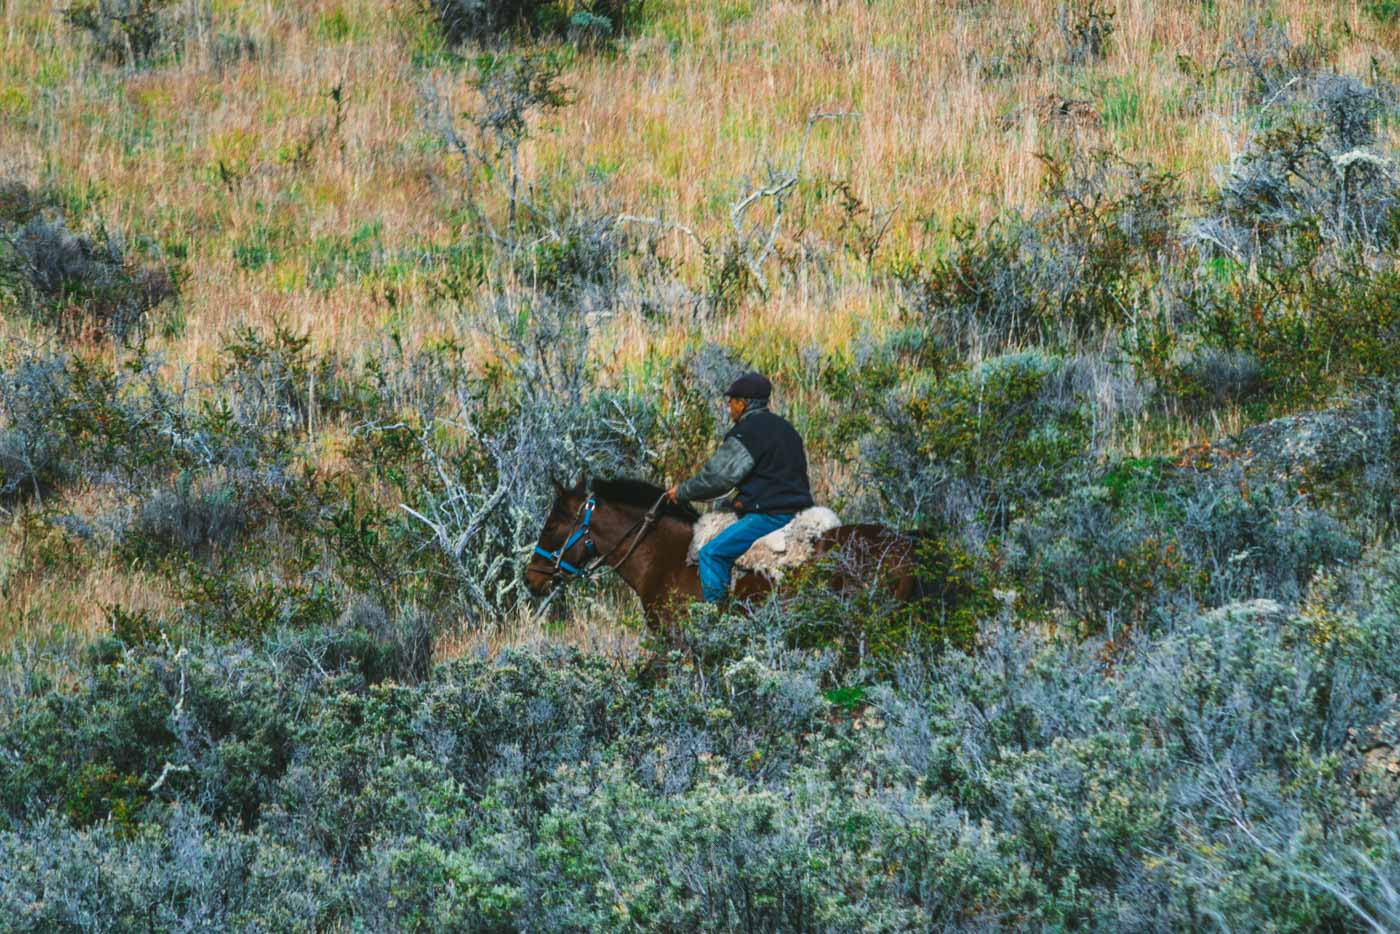 A local gaucho makes his way across a field in Patagonia, Chile